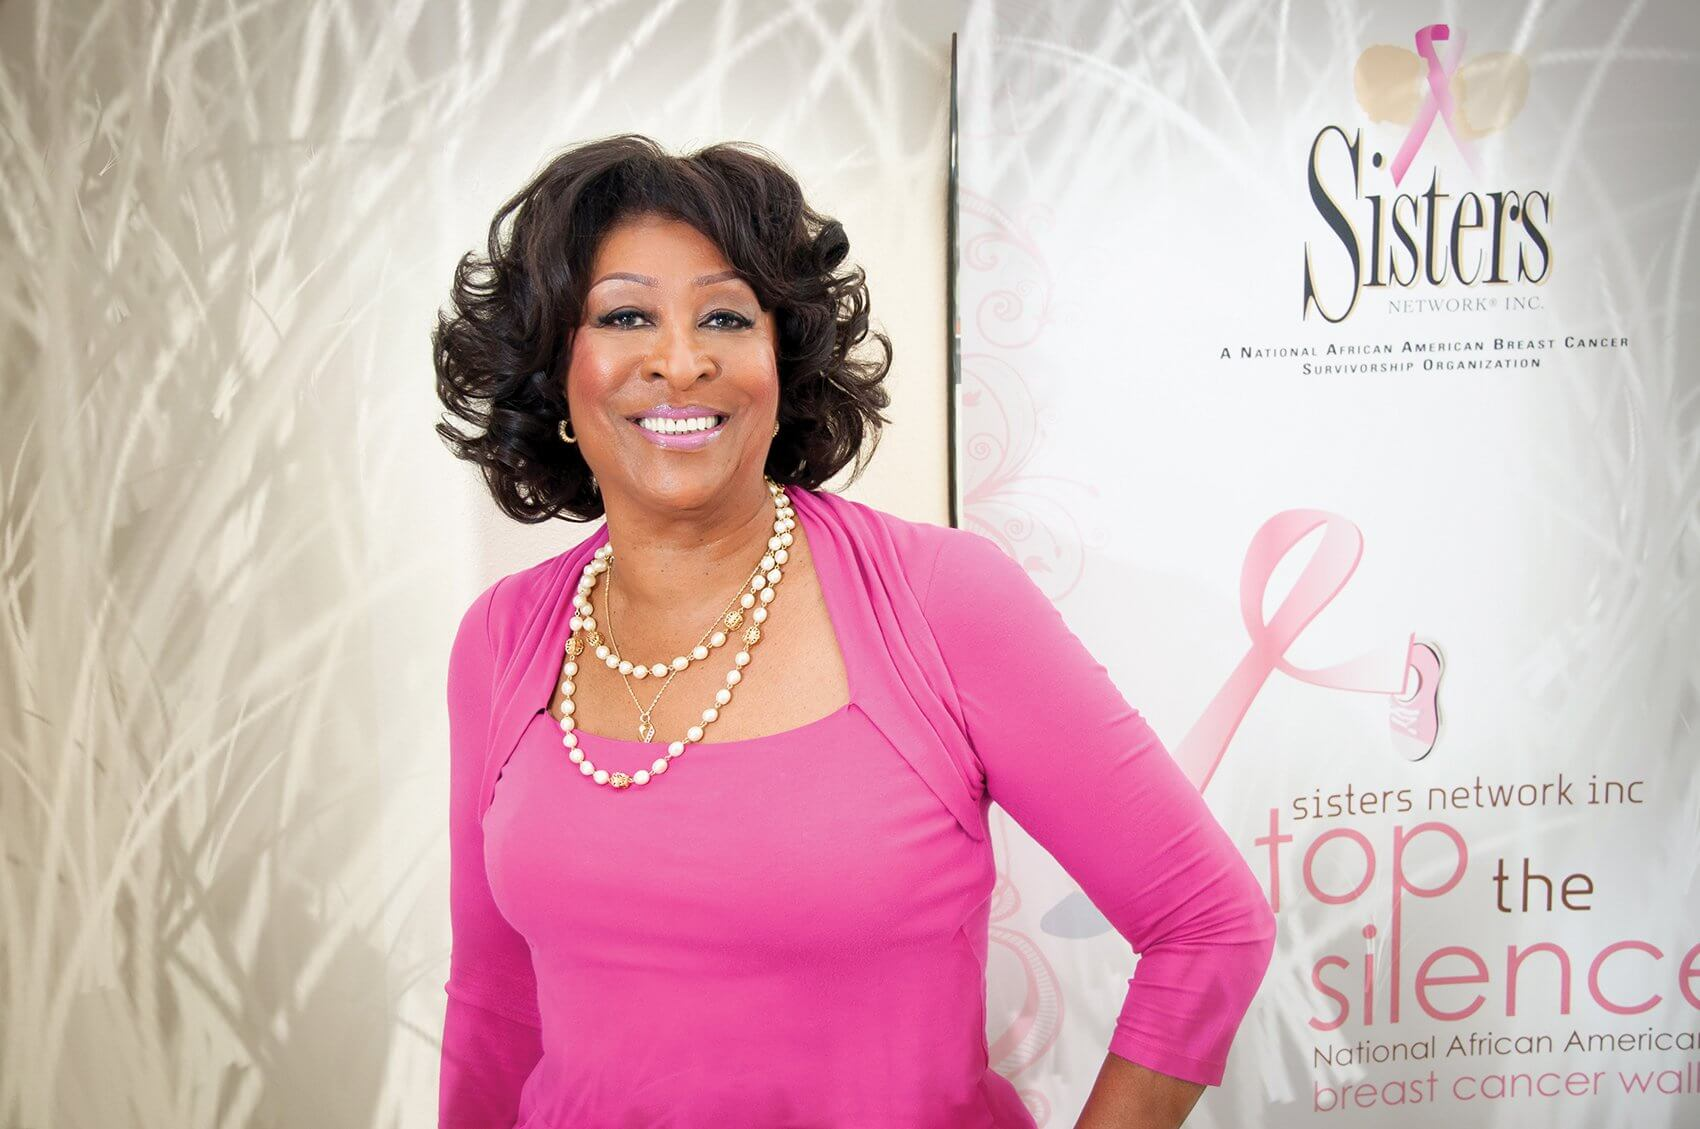 Karen Jackson, founder & CEO of Sisters Network Inc., created an organization she would have liked to join after her own battle with breast cancer. (Credit: Sisters Network Inc.)